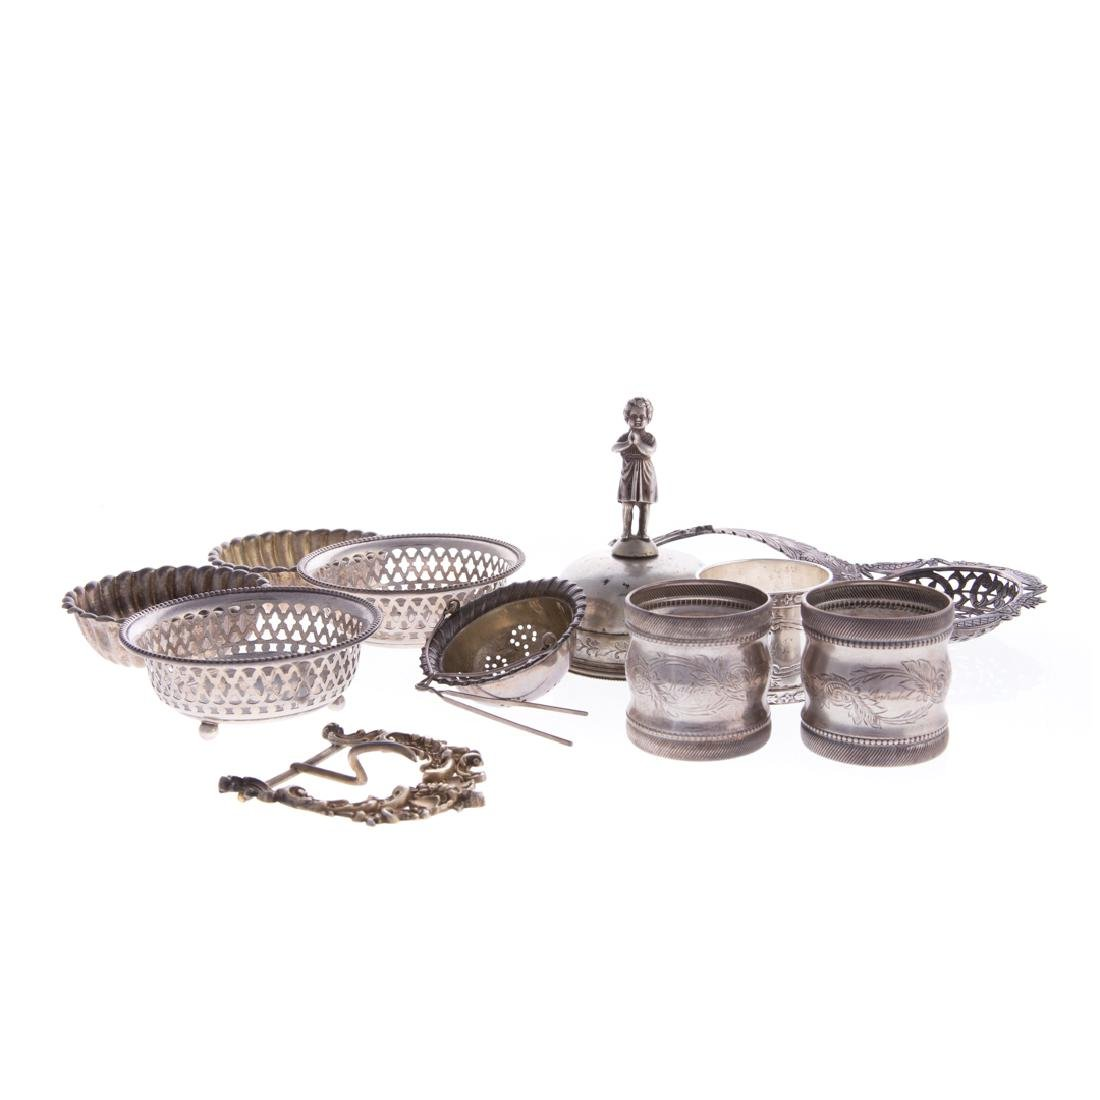 American & Continental silver items (11)